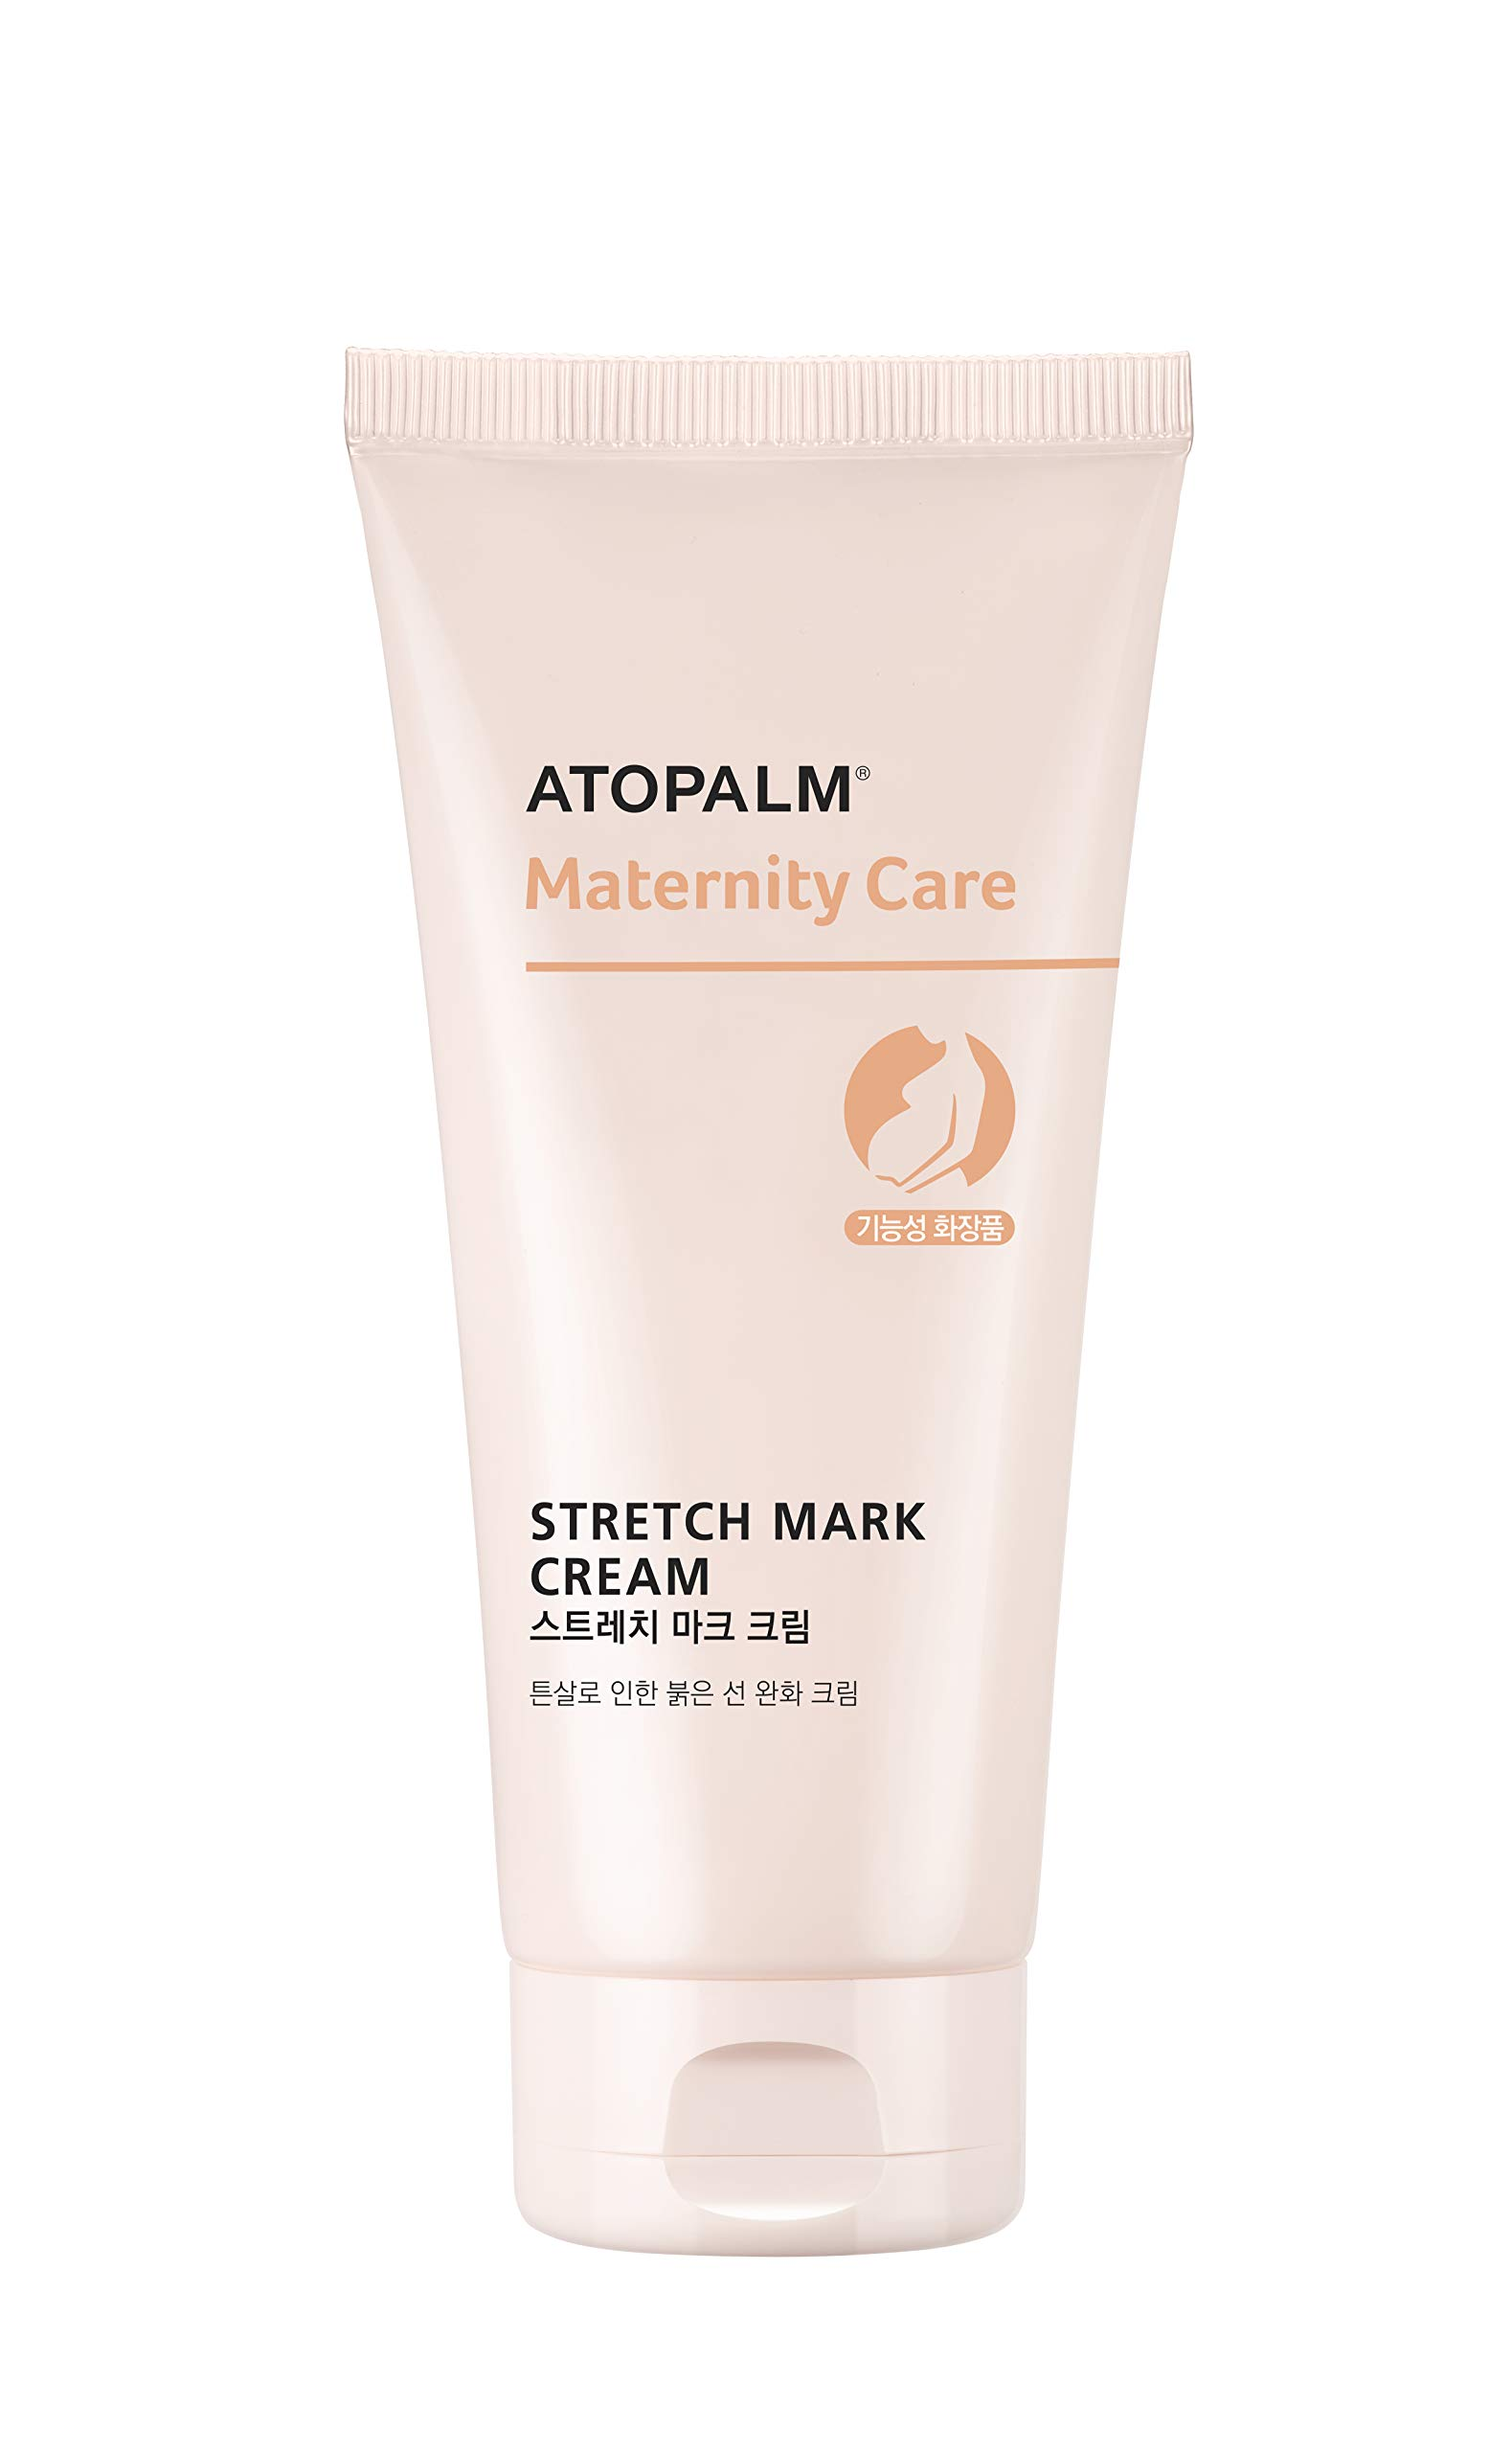 ATOPALM Maternity Care Stretch Mark Cream Formulated with MLE and Ceramide-9S